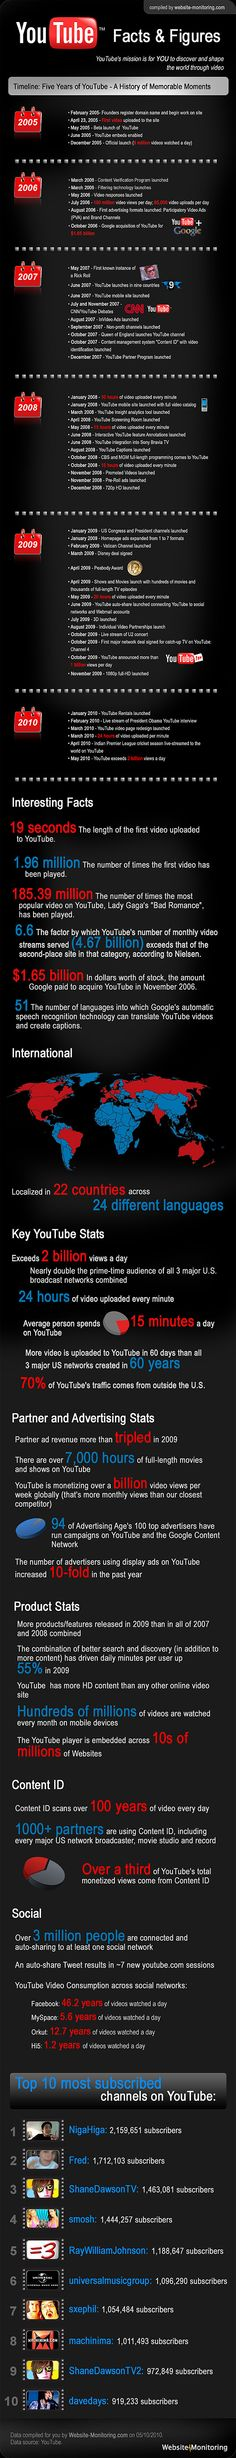 YouTube Facts and Figures - At MegaCam we can help you succeed in the video marketing world. Contact us (07) 808-0411. #youtube #infographic #video